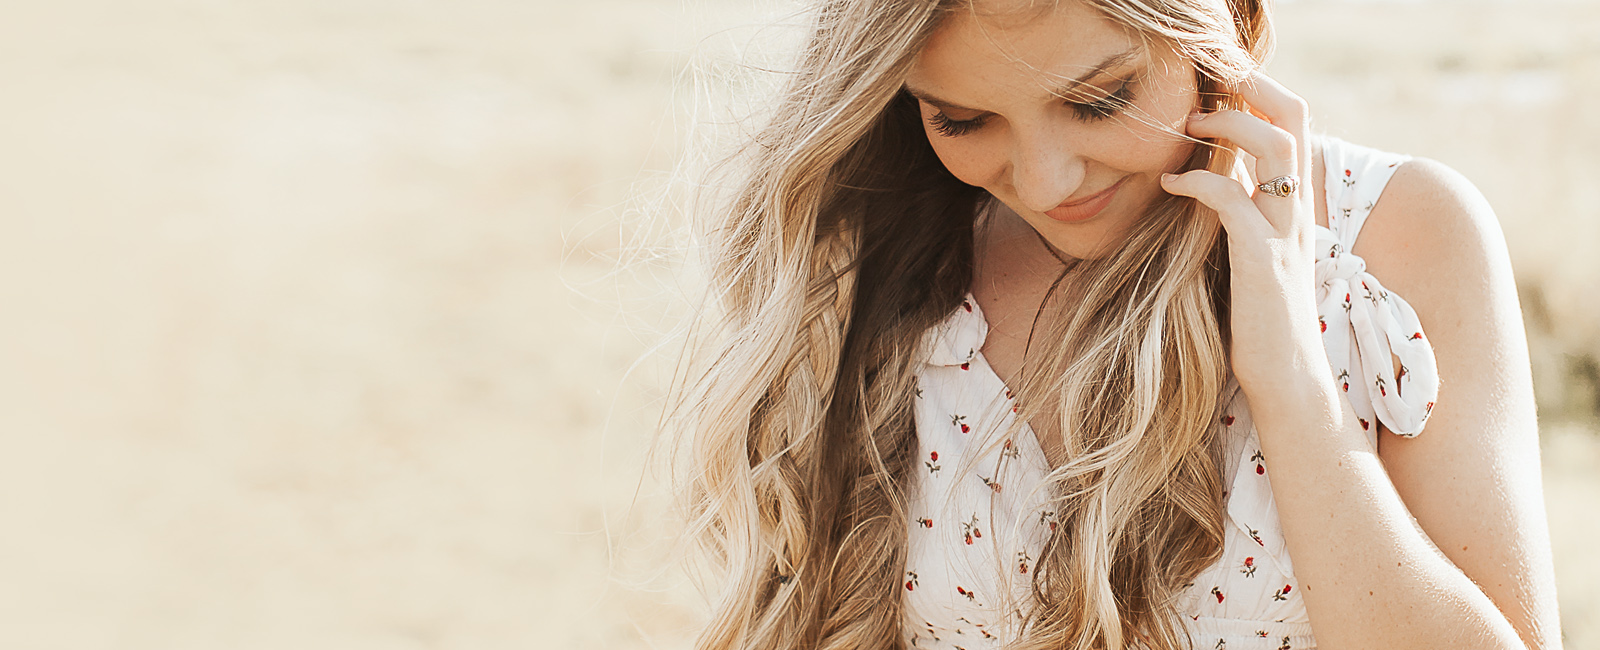 blonde hair girl in field looking down and smiling